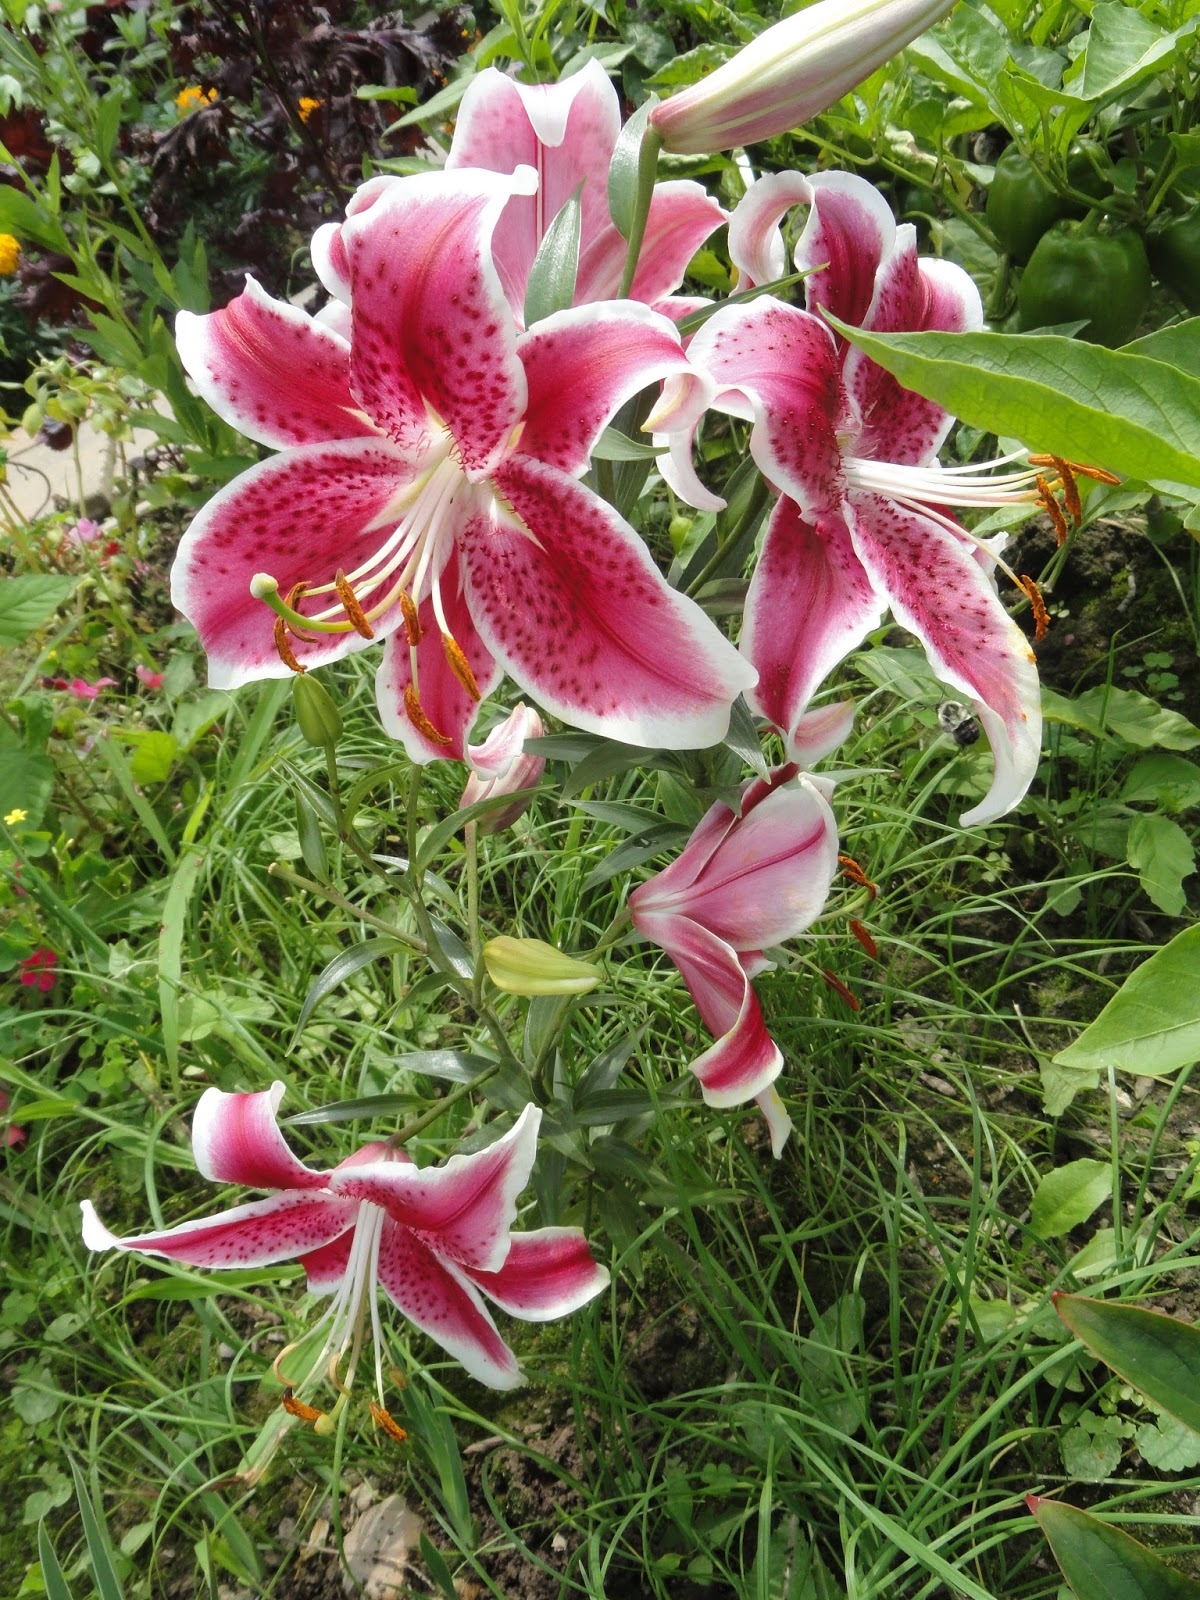 Dr tsais blog our lilies came from a distinguished family william blake is a complicated poet painter i once read an article about him by ts eliot and only half understood but william blakes poem of lily is izmirmasajfo